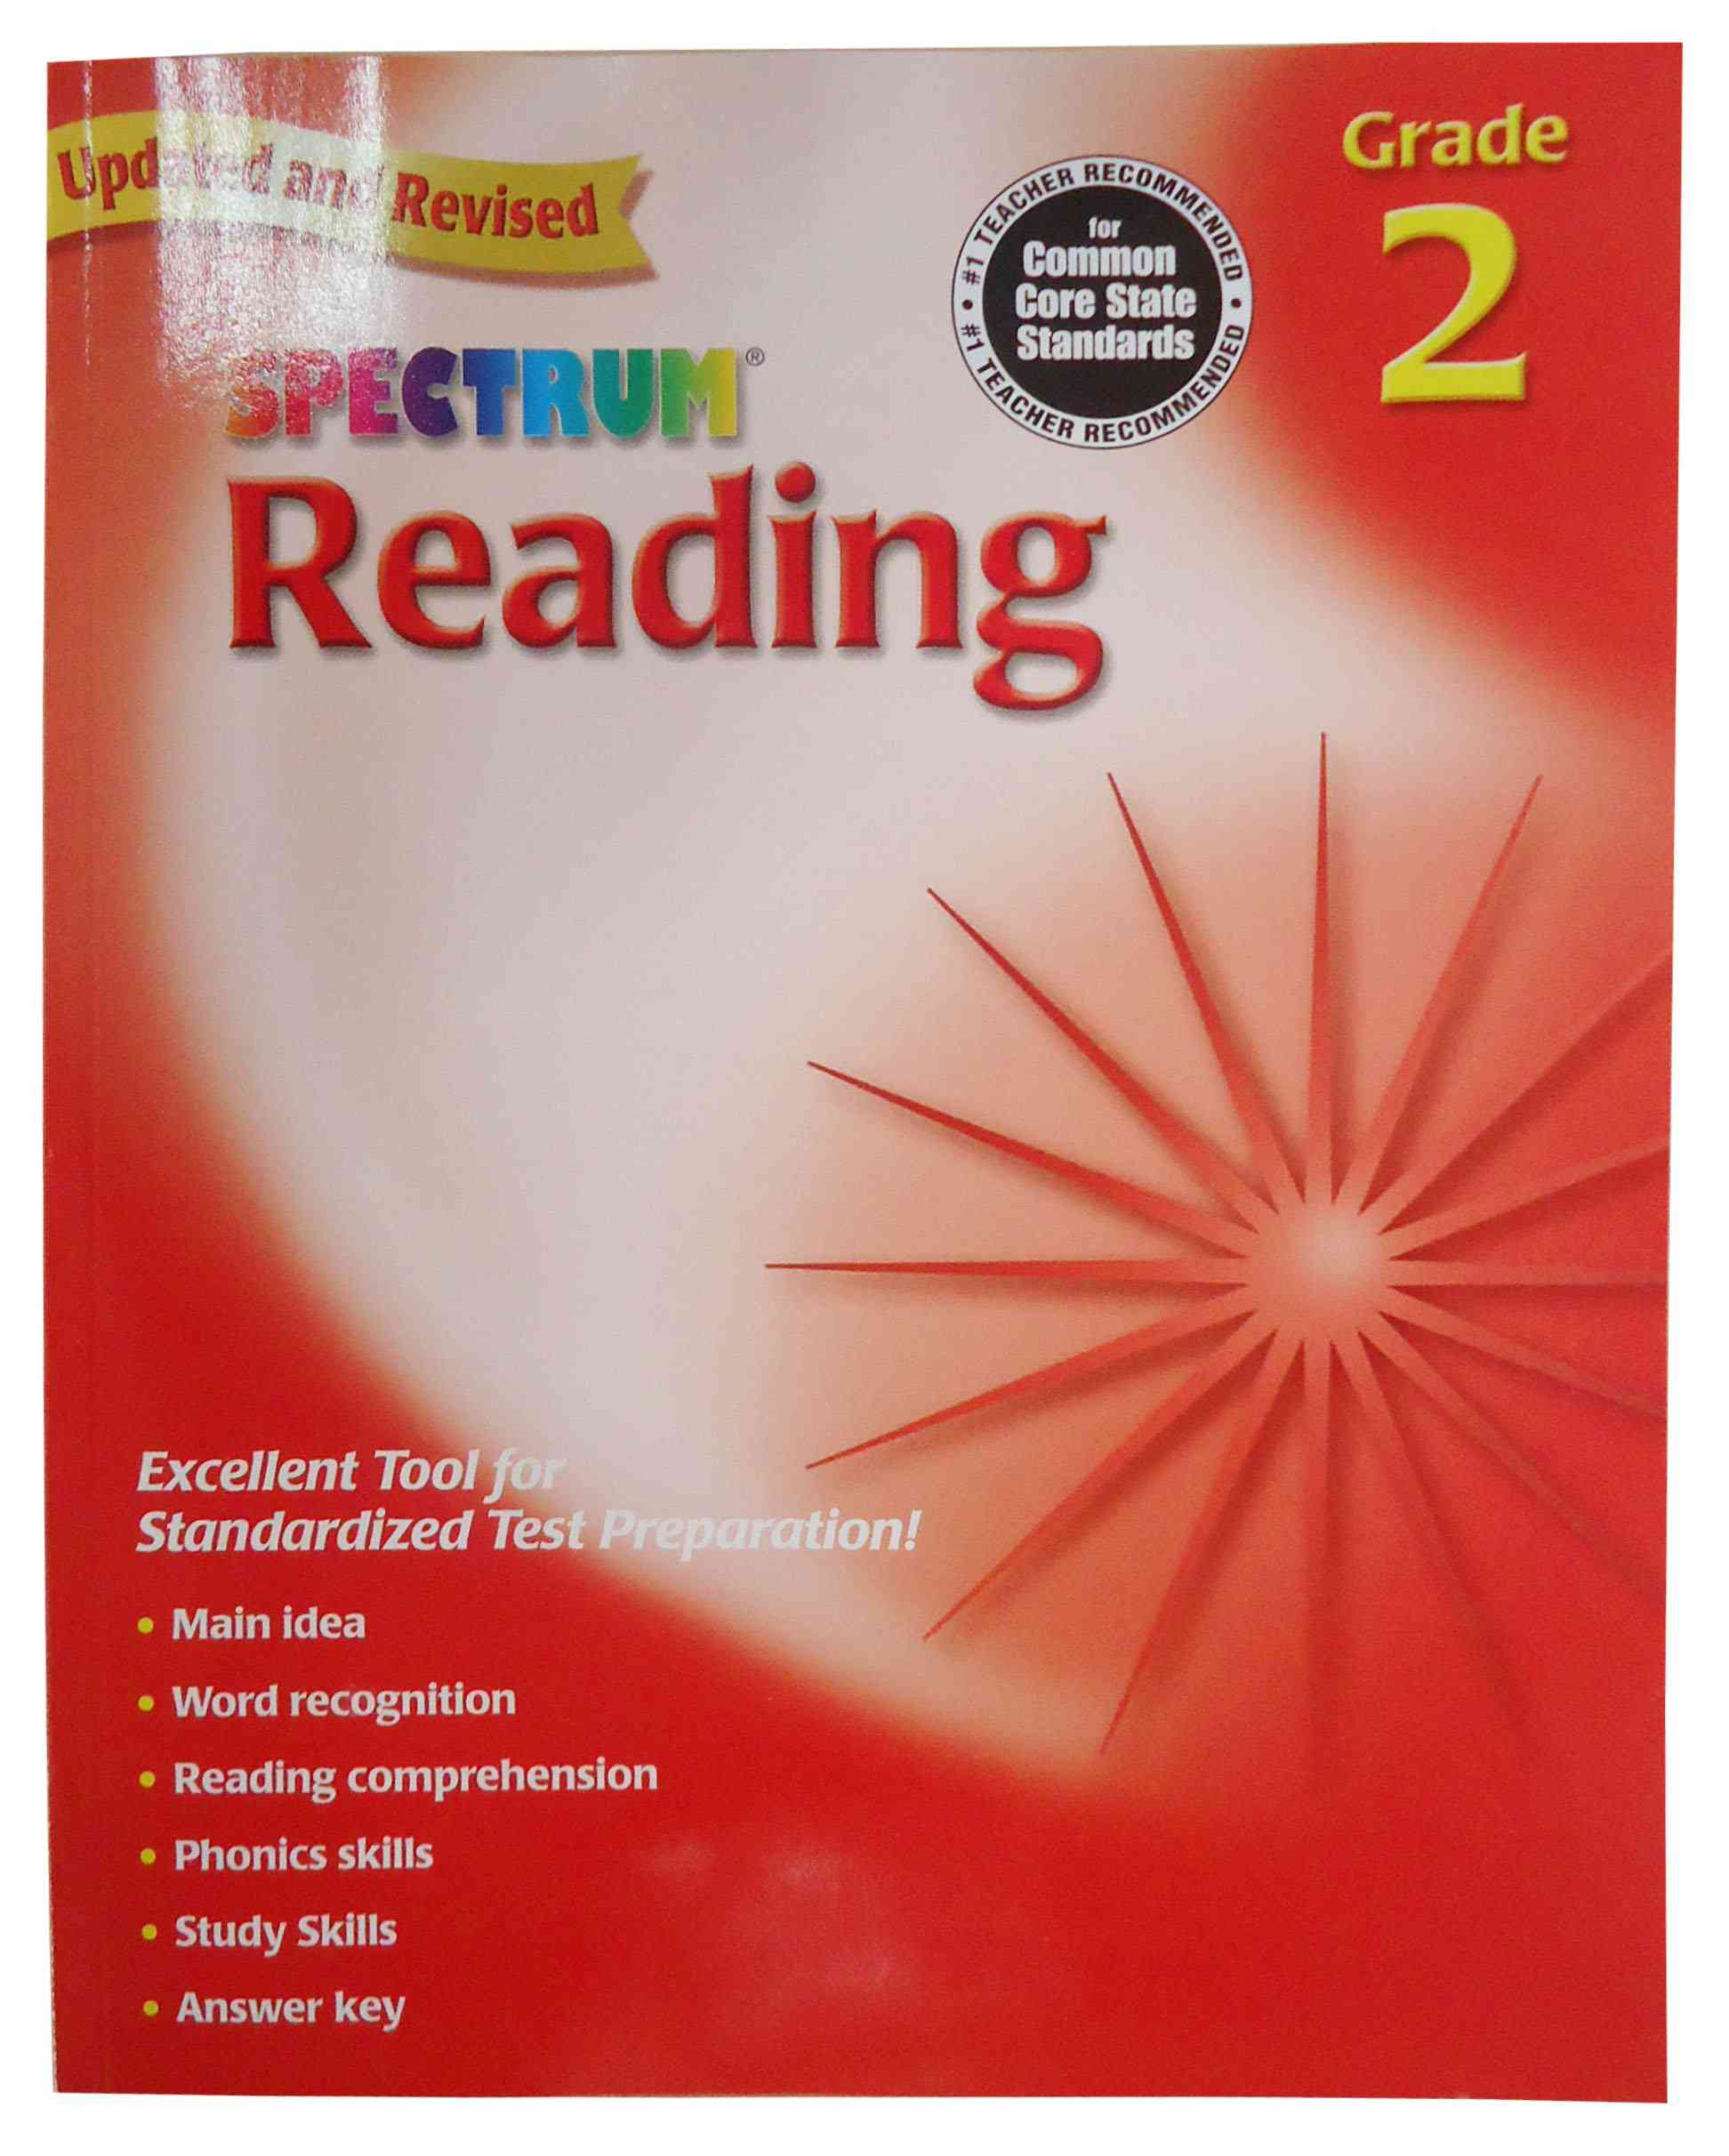 The cover of Spectrum Reading Grade 2 has an image of a star with 16 points